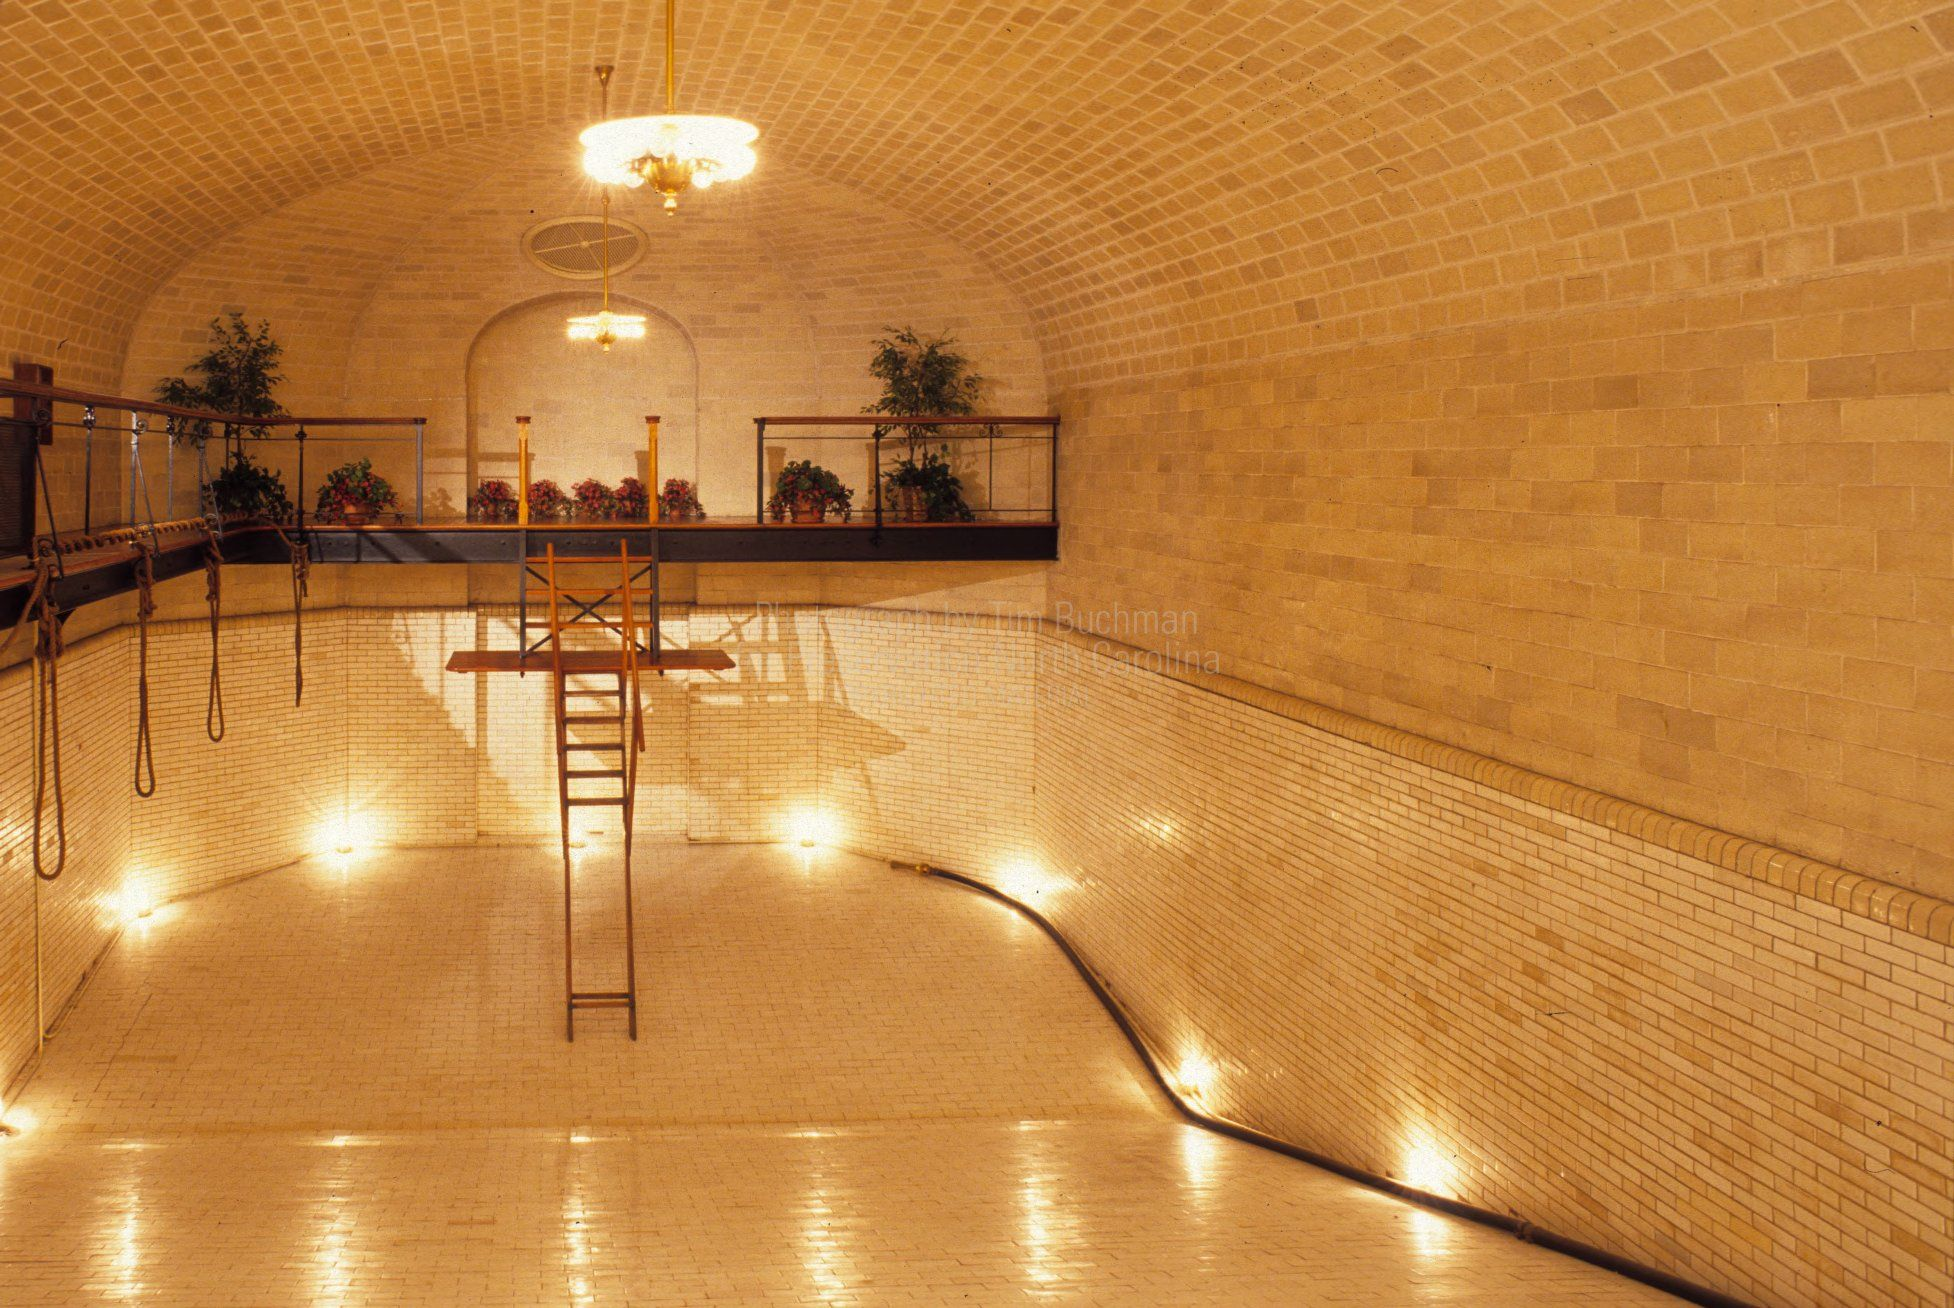 Biltmore estate interior pool images for Is biltmore estate haunted